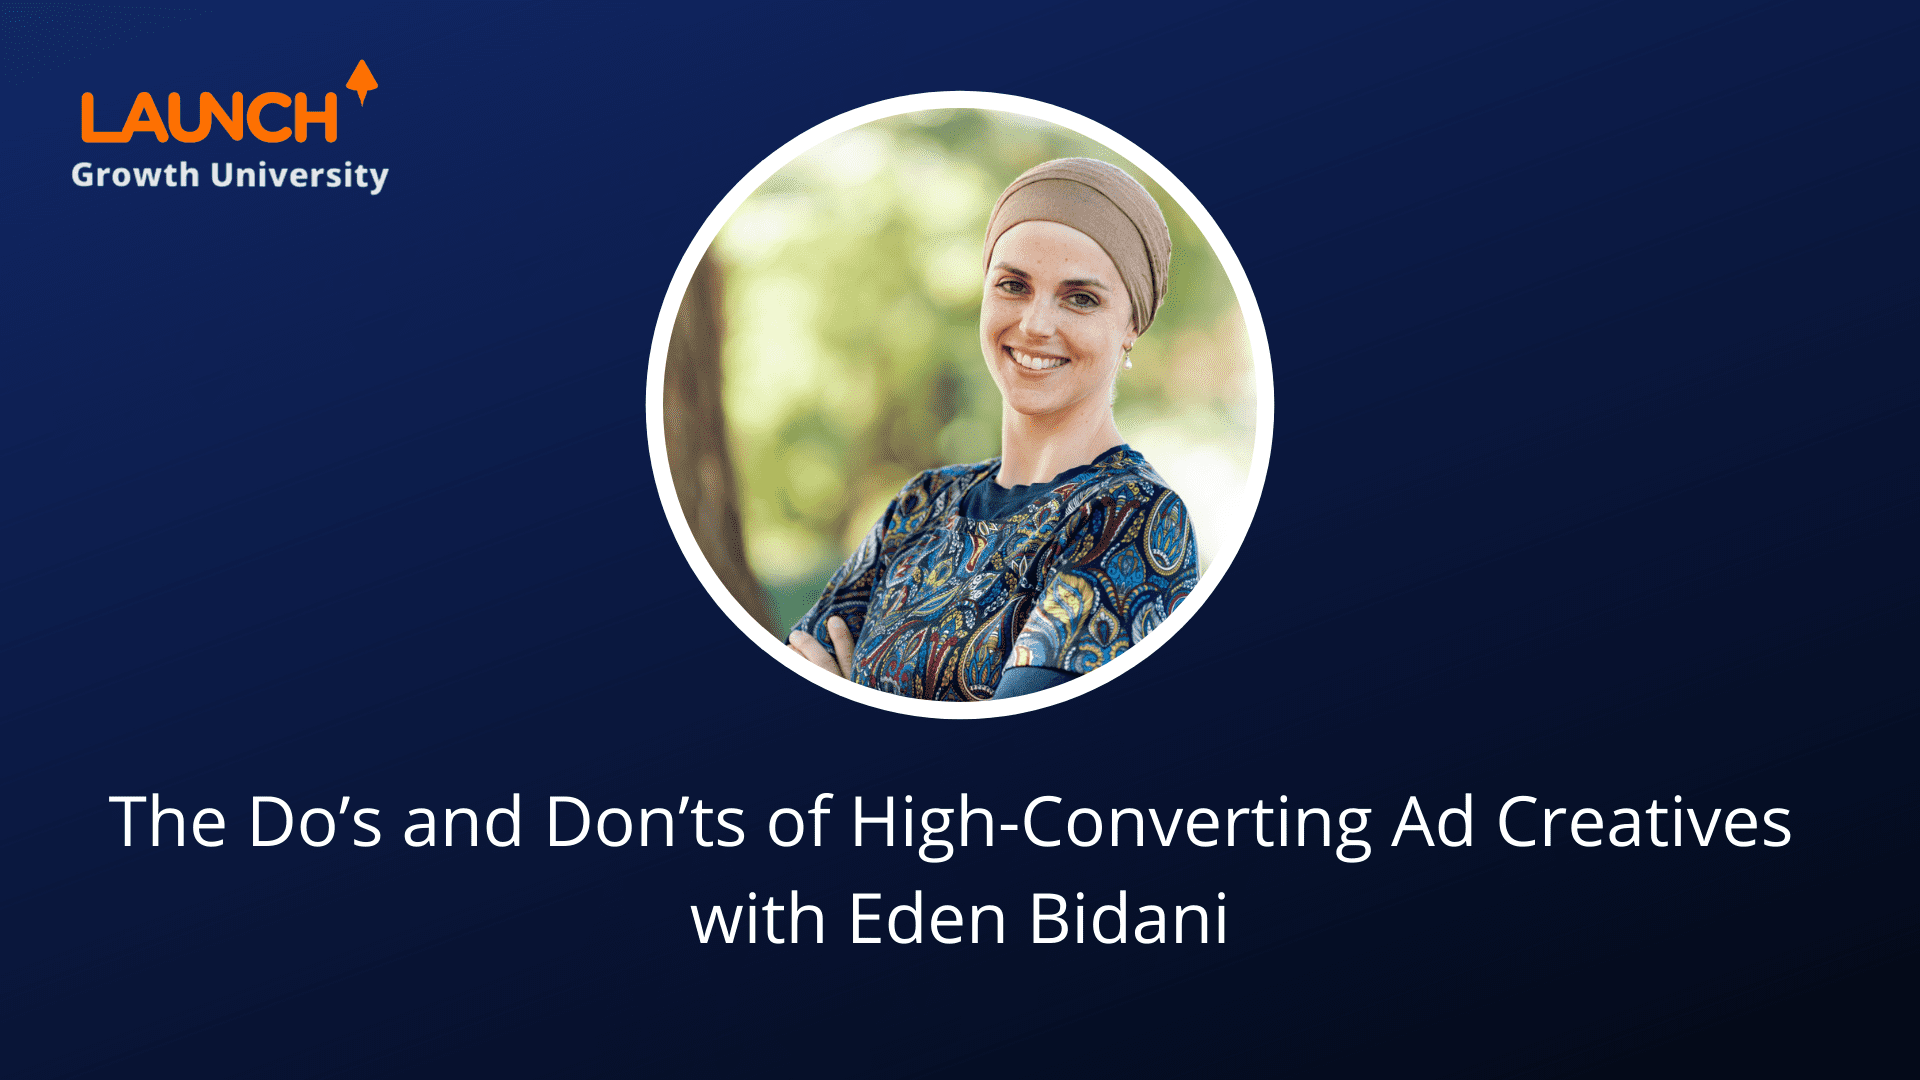 Masterclass – The Do's and Don'ts of High-Converting Ad Creatives with Eden Bidani